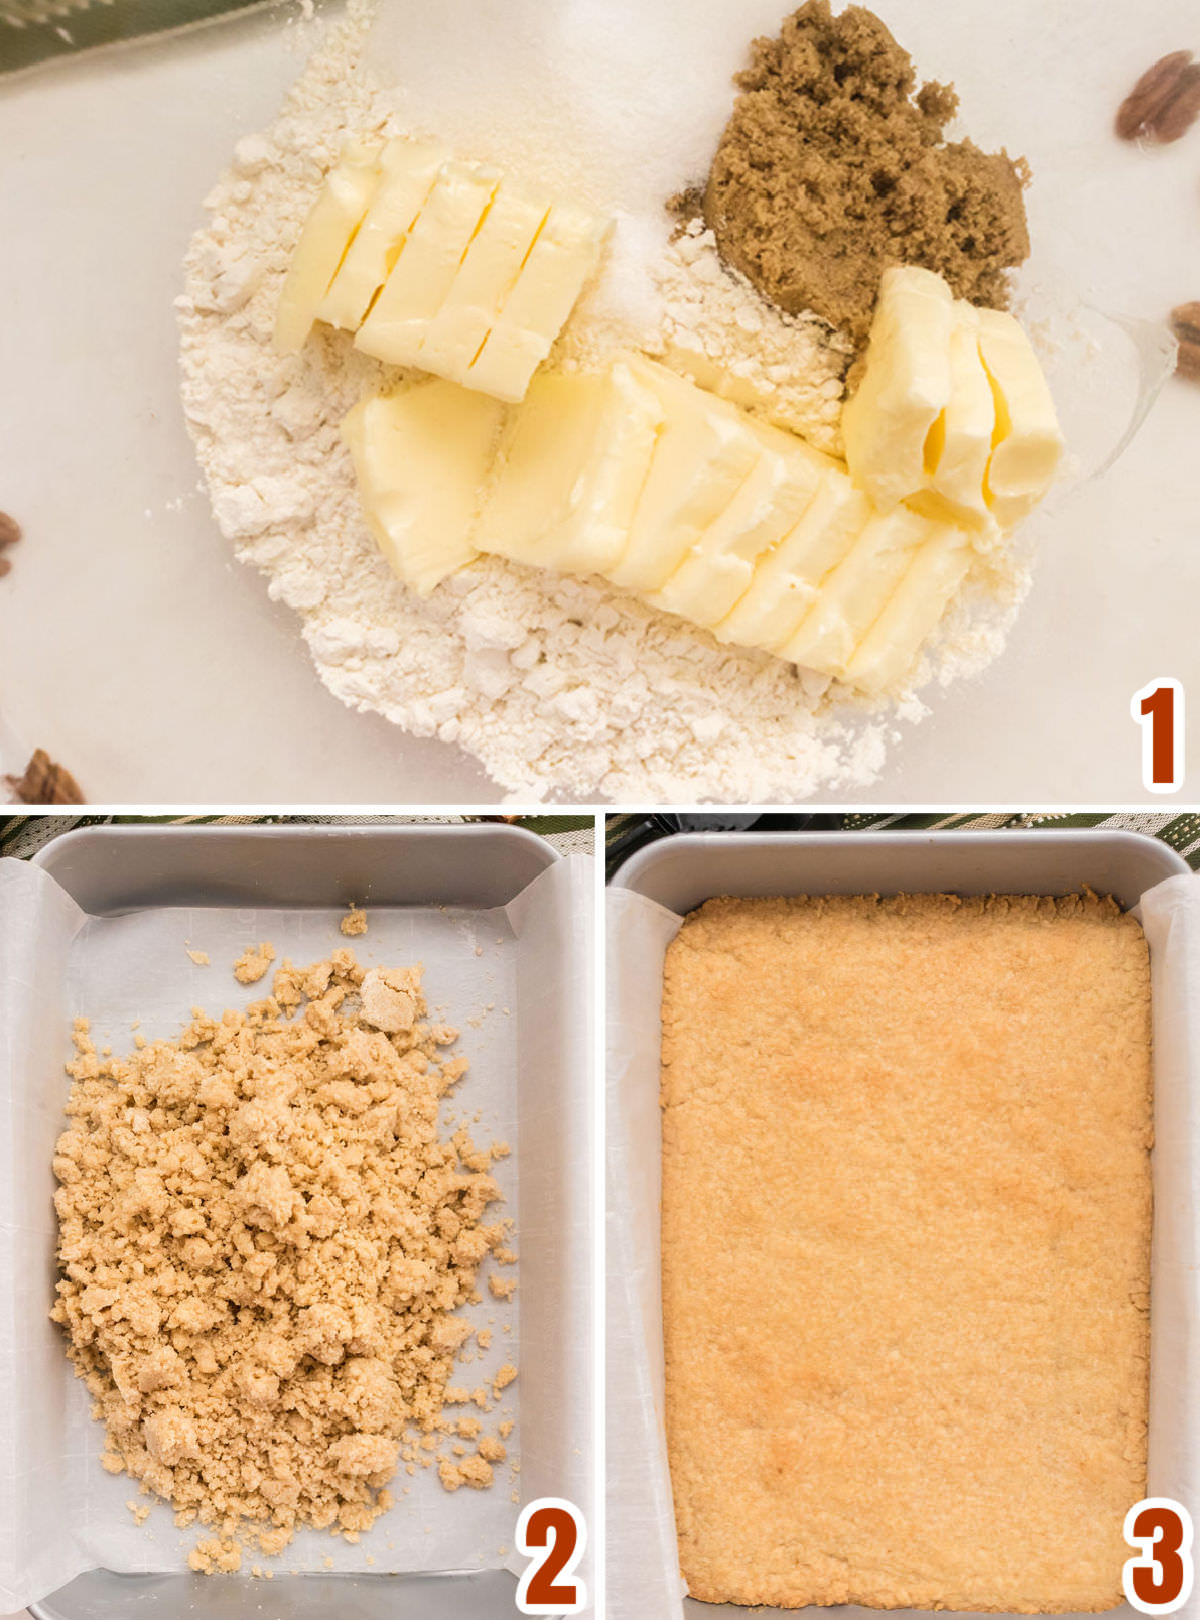 Collage image showing the steps for making the cookie crust for the Pecan Pie Bars.